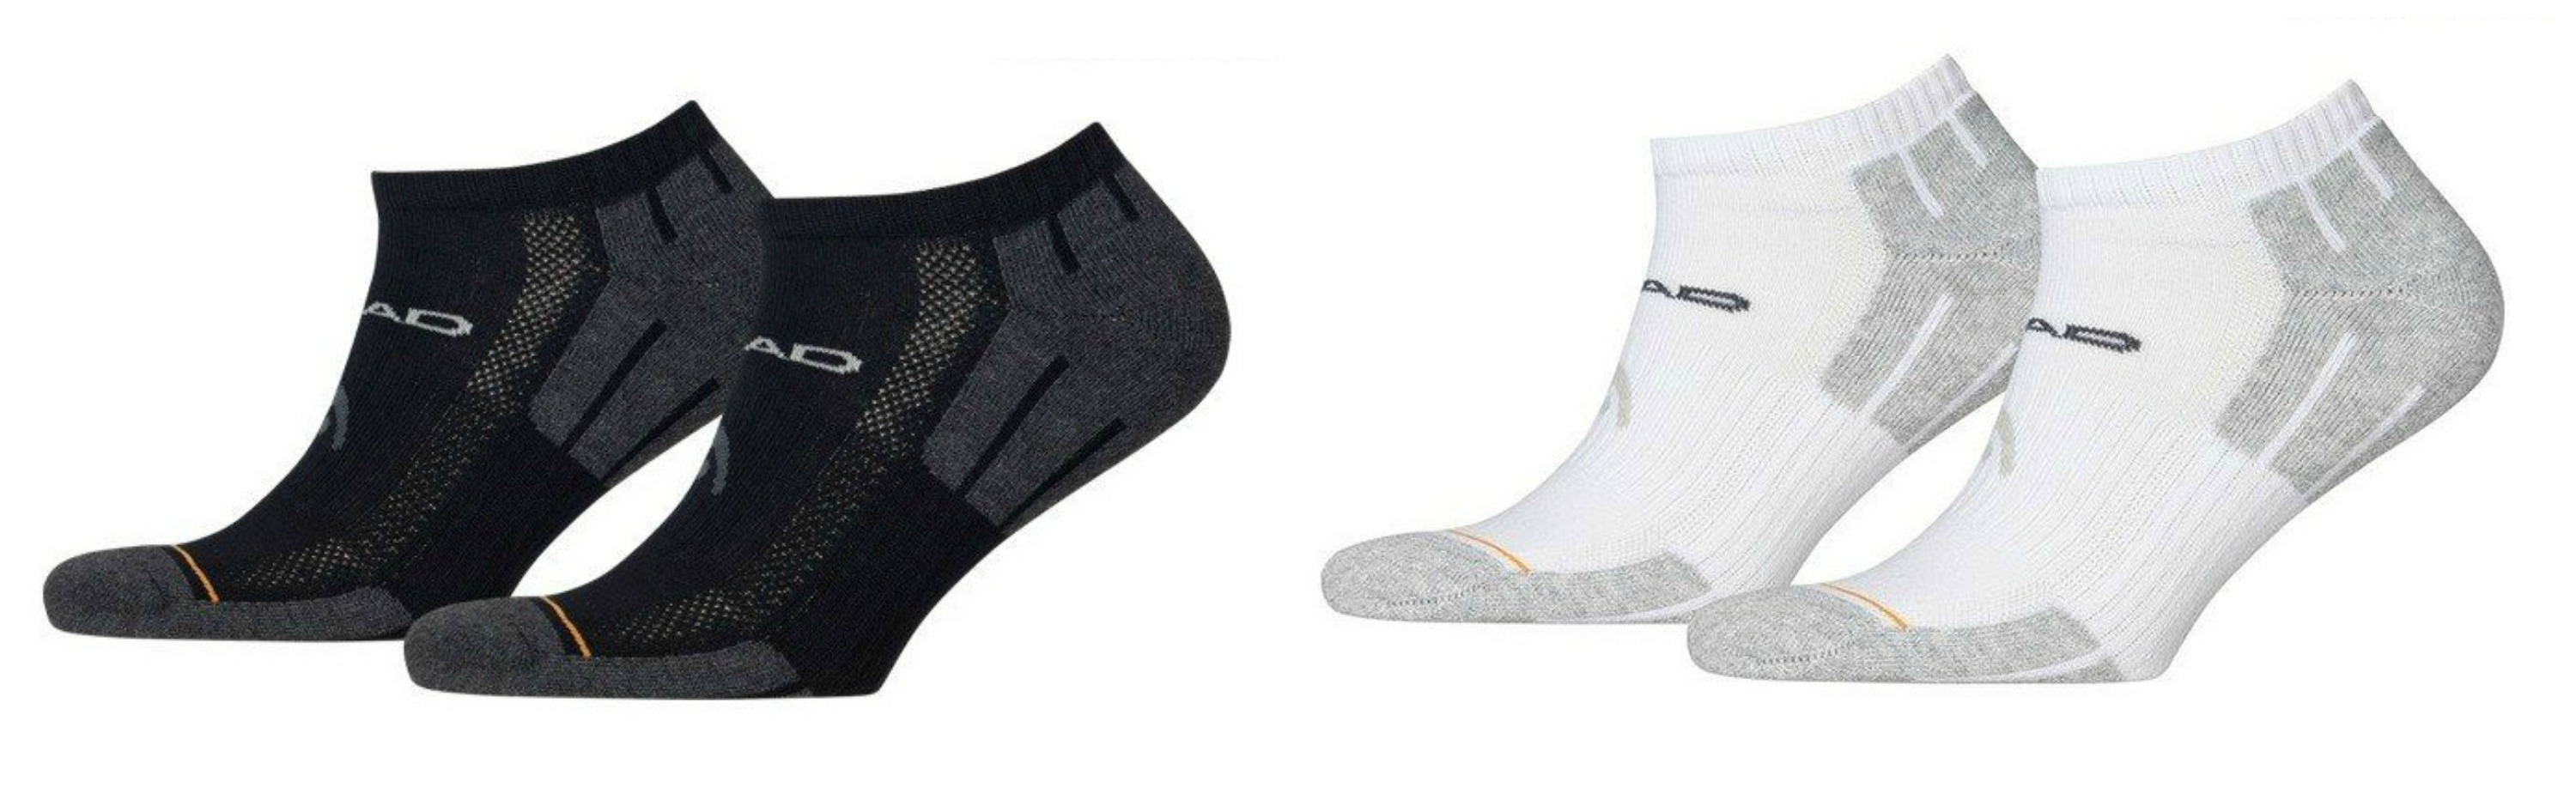 4 Paar Head Performance Sneaker Socken